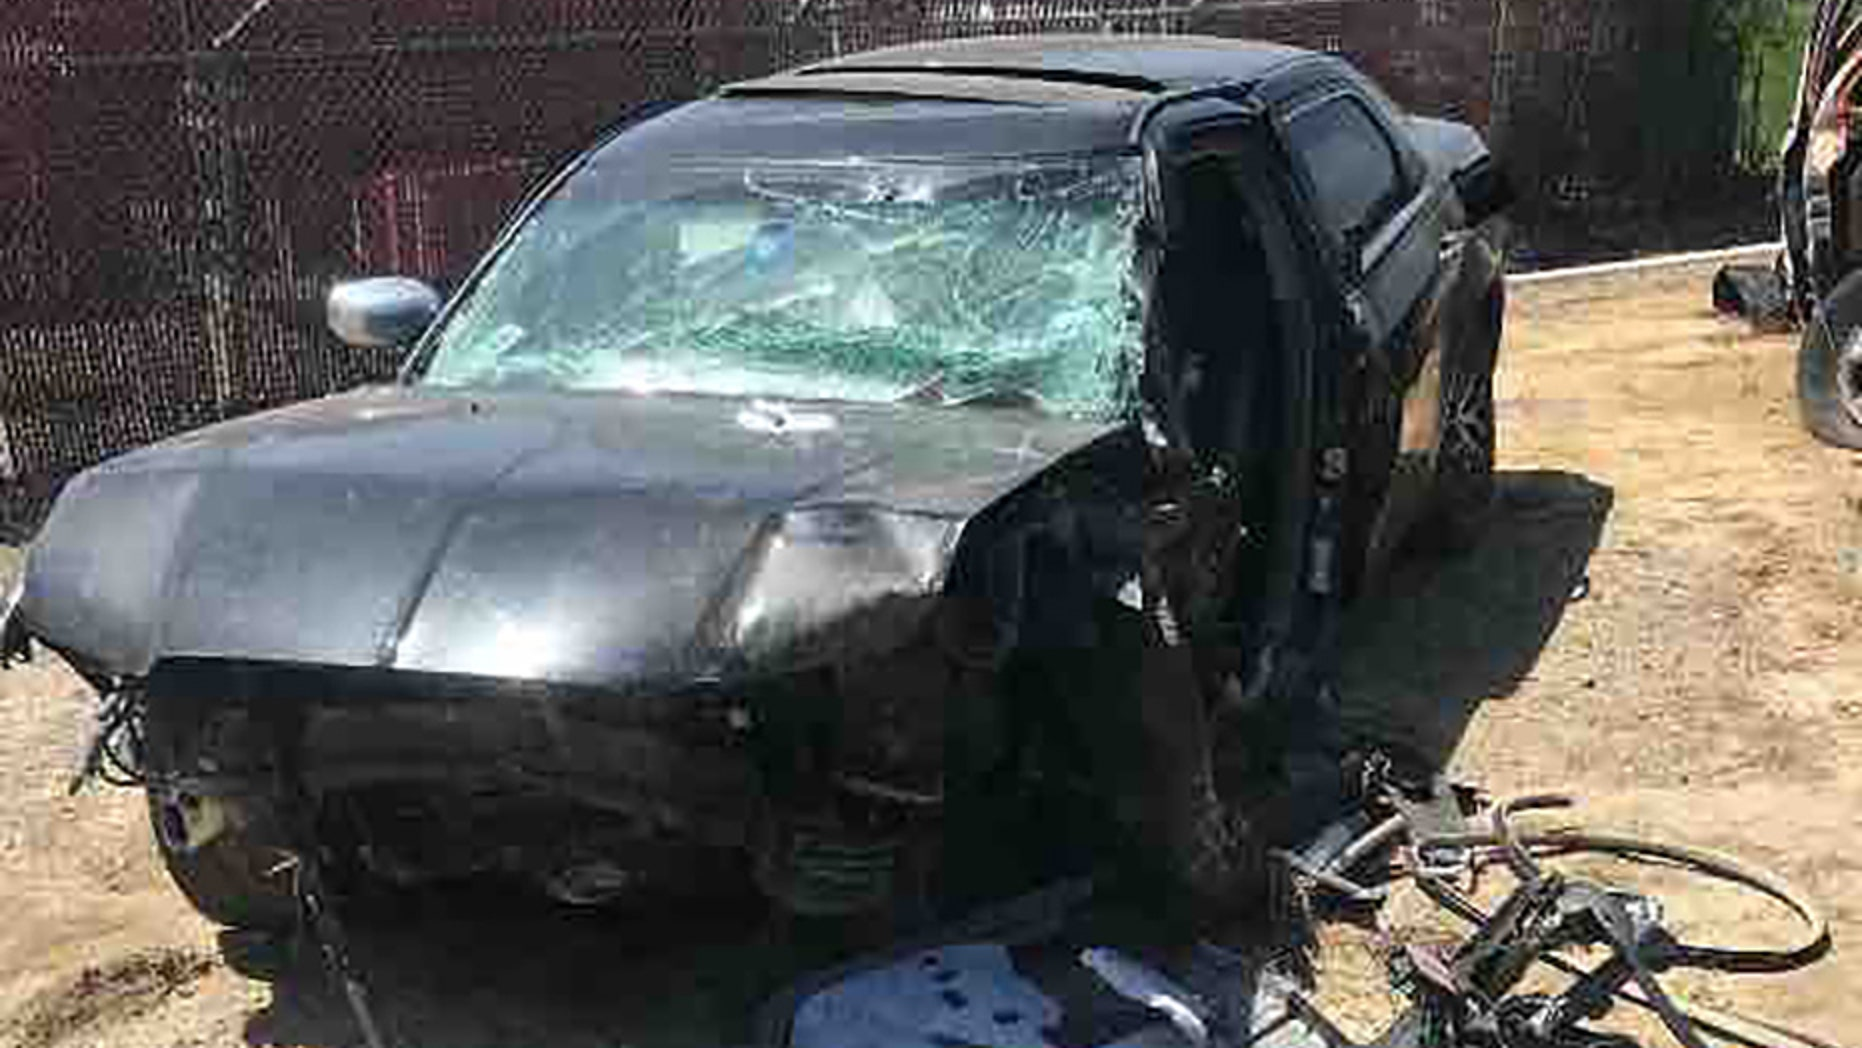 This Chrysler 300 was stolen, totaled after owner Jerry Ramirez, 18, stopped to help at a Texas accident scene.